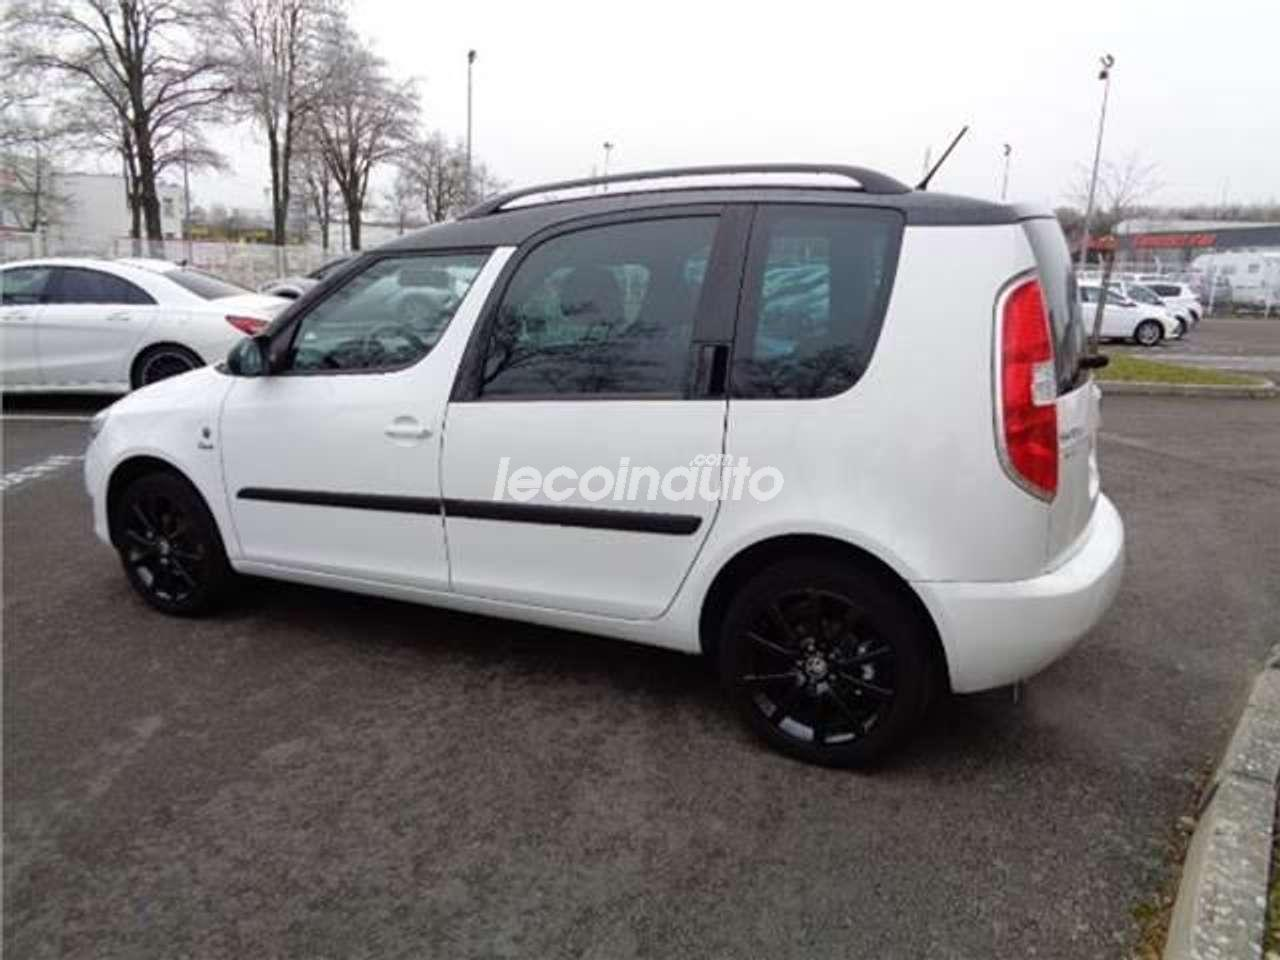 Skoda Roomster roomster 1.2 TSI 85ch Visage